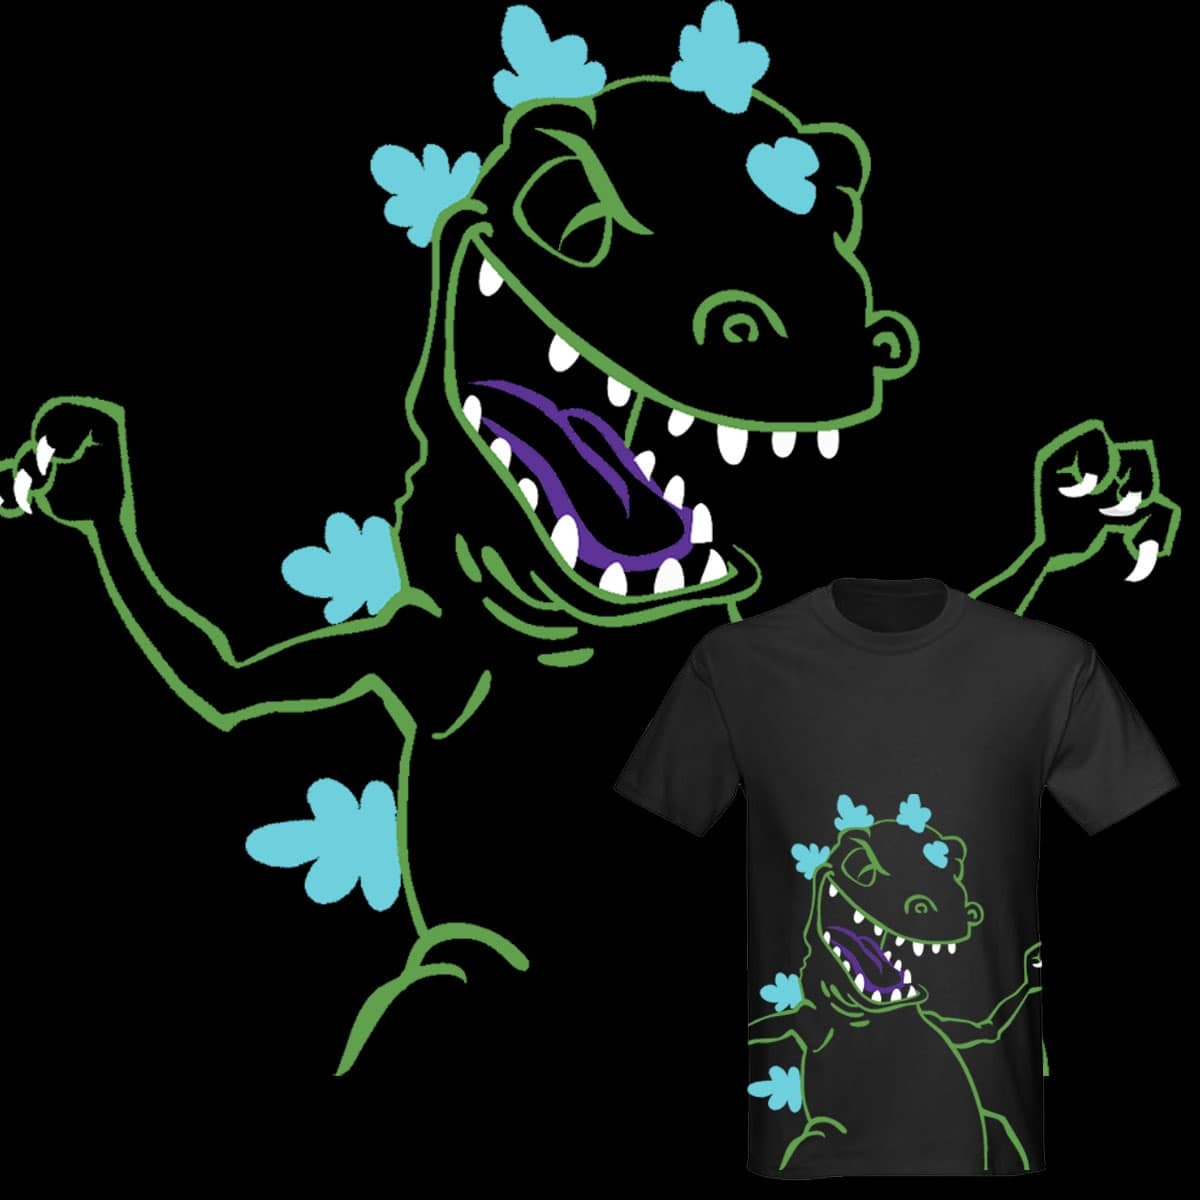 Neon Reptar by POP-COLOR-BOT on Threadless